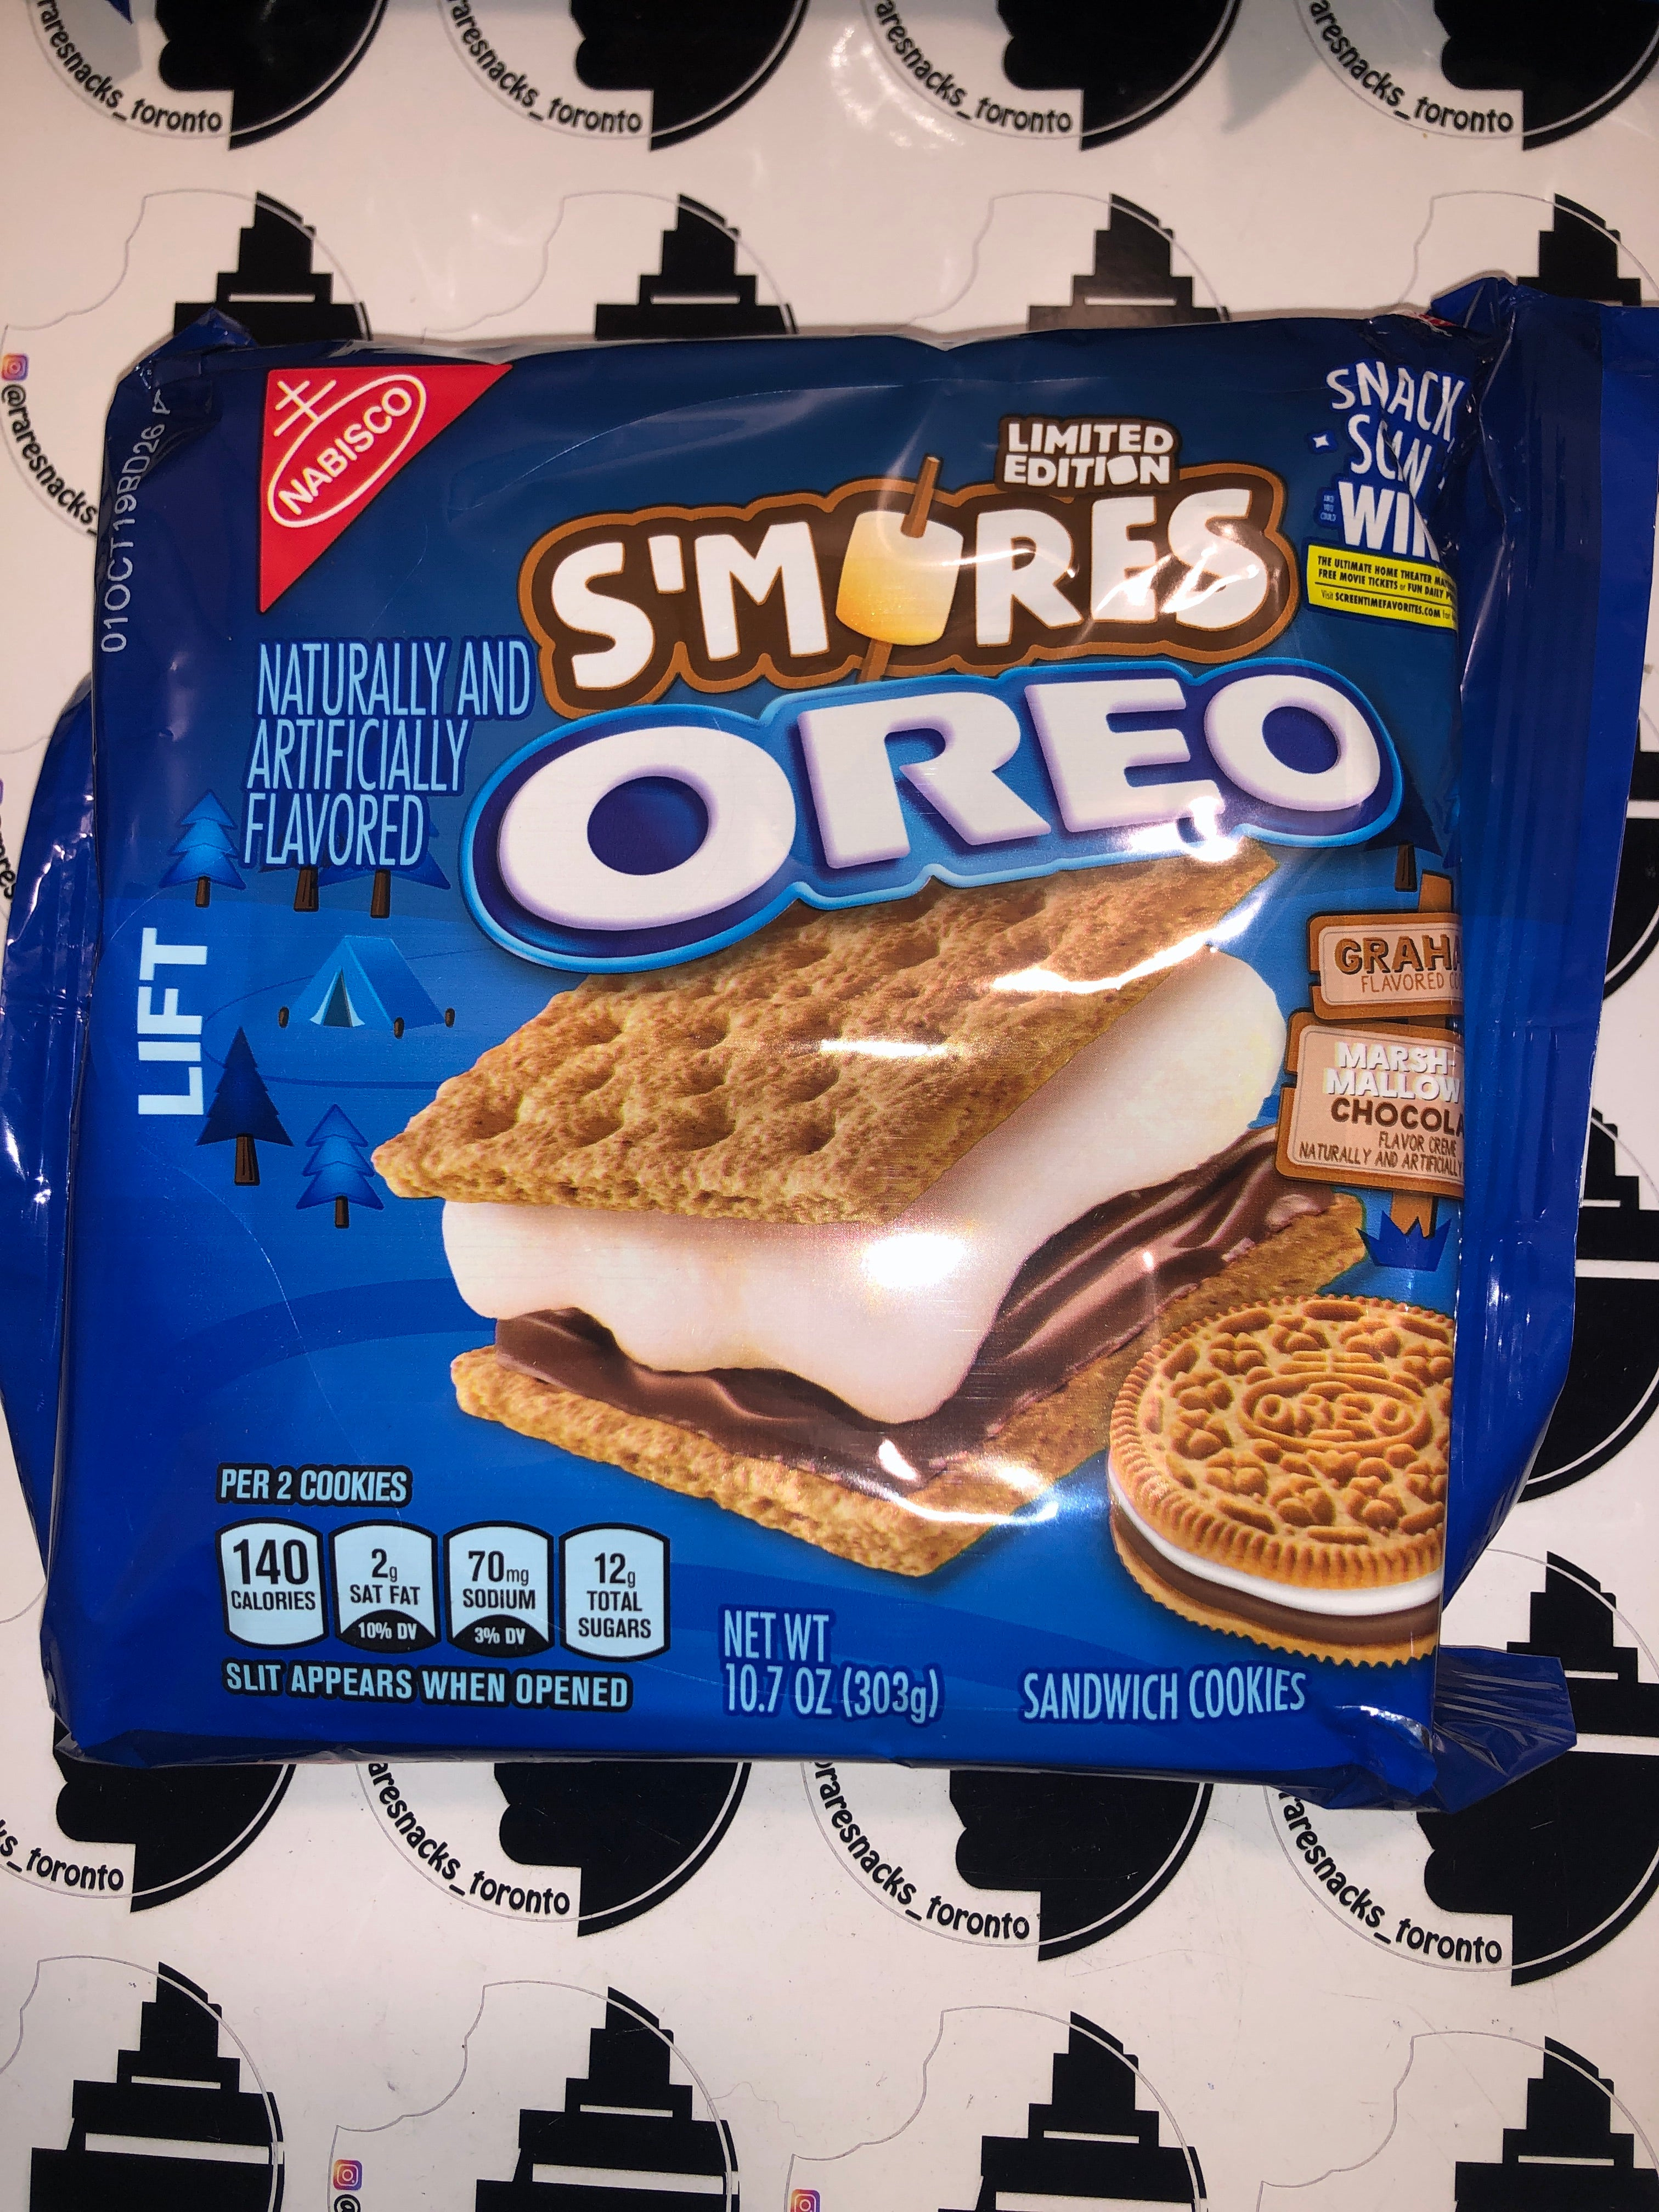 Oreo S'mores Limited Edition